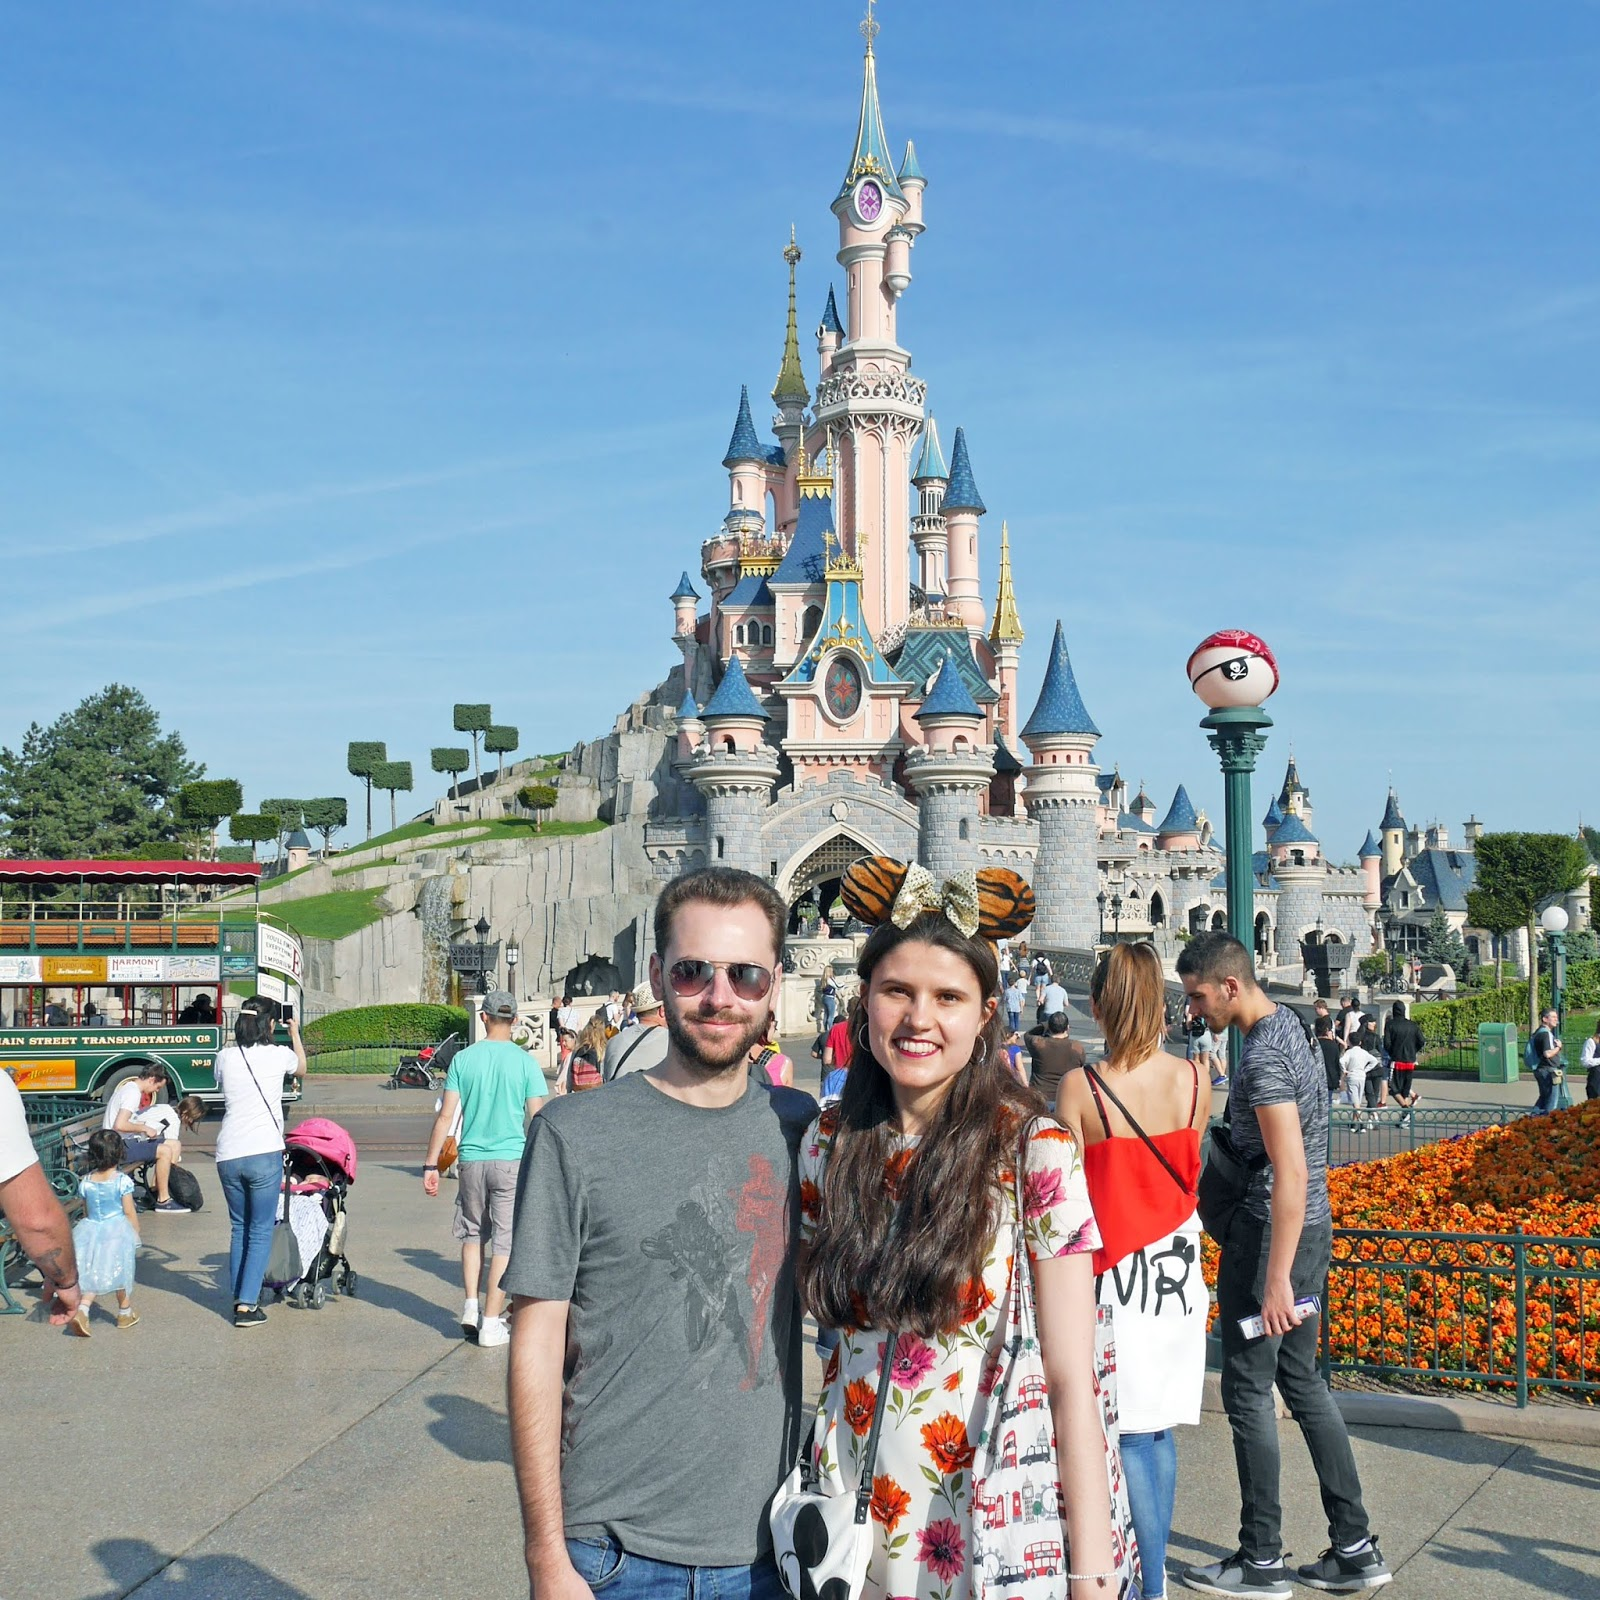 Kat Last and Stuart standing in front of the Castle at Disneyland Paris